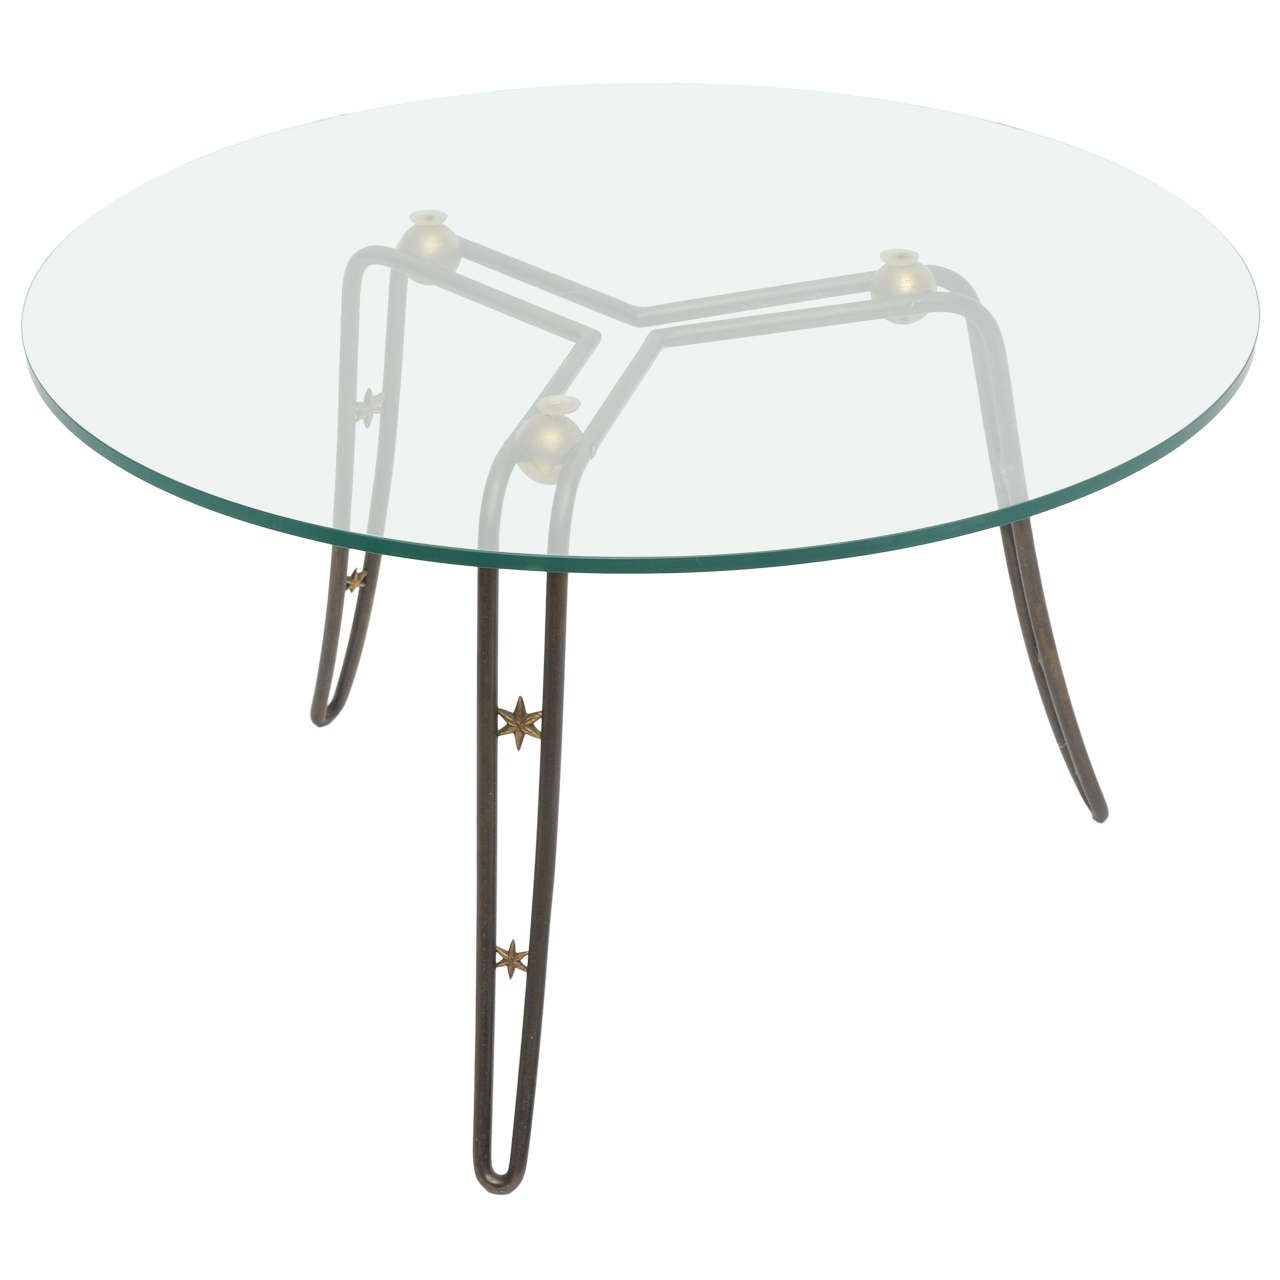 French Modern Steel, Brass and Glass Low Table in the Style of Royere